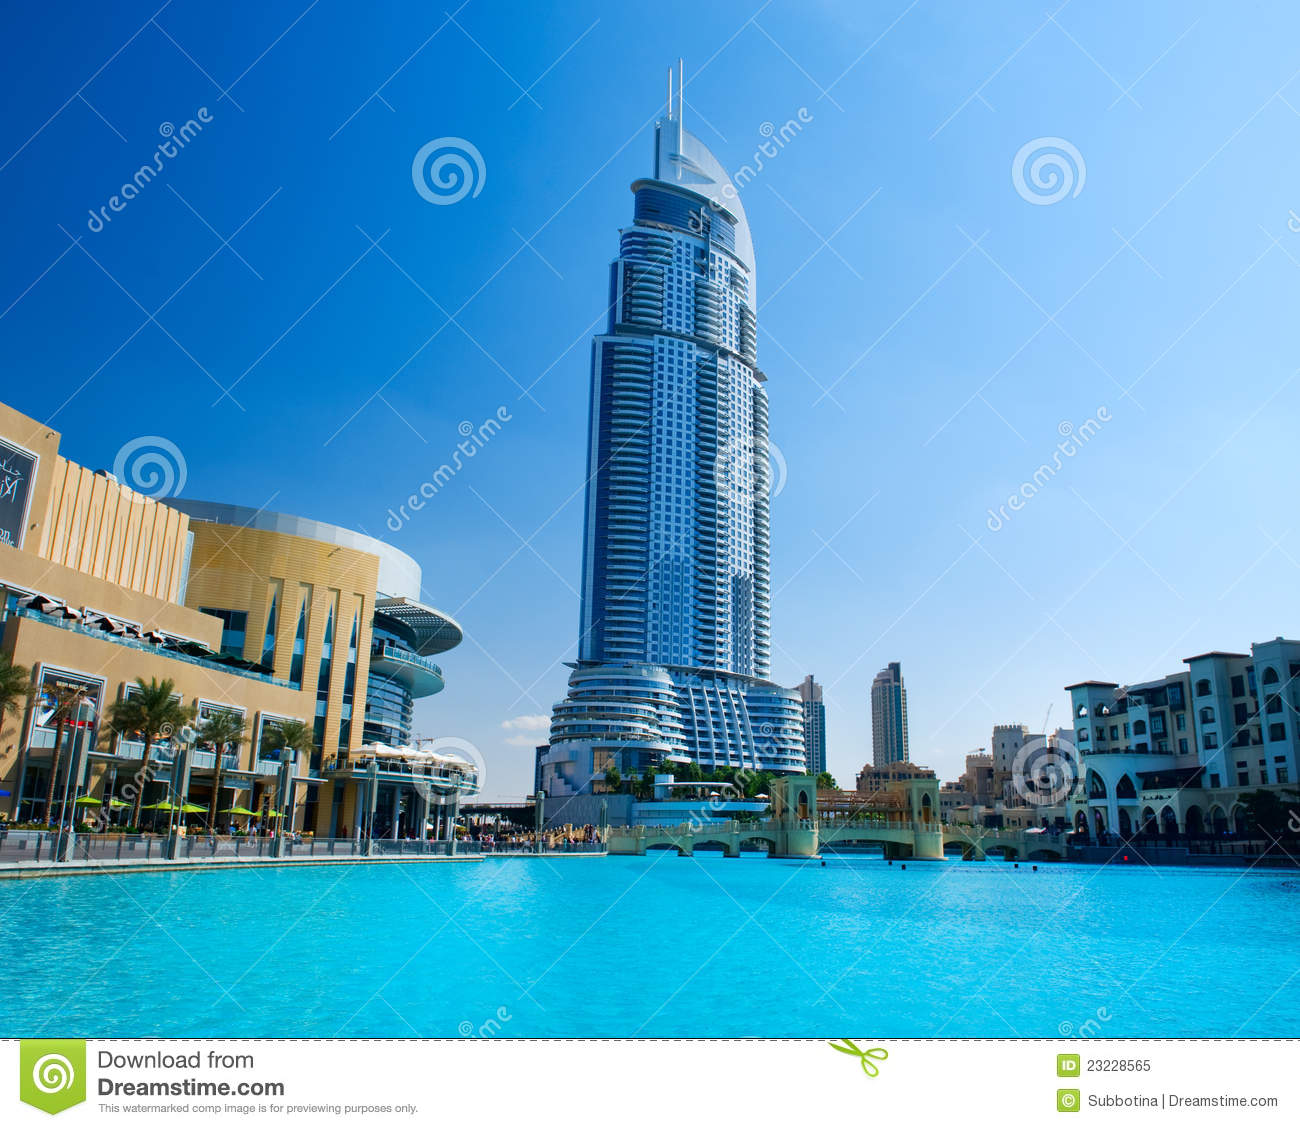 Address hotel and lake burj khalifa stock image image of for Dubai hotels near burj khalifa